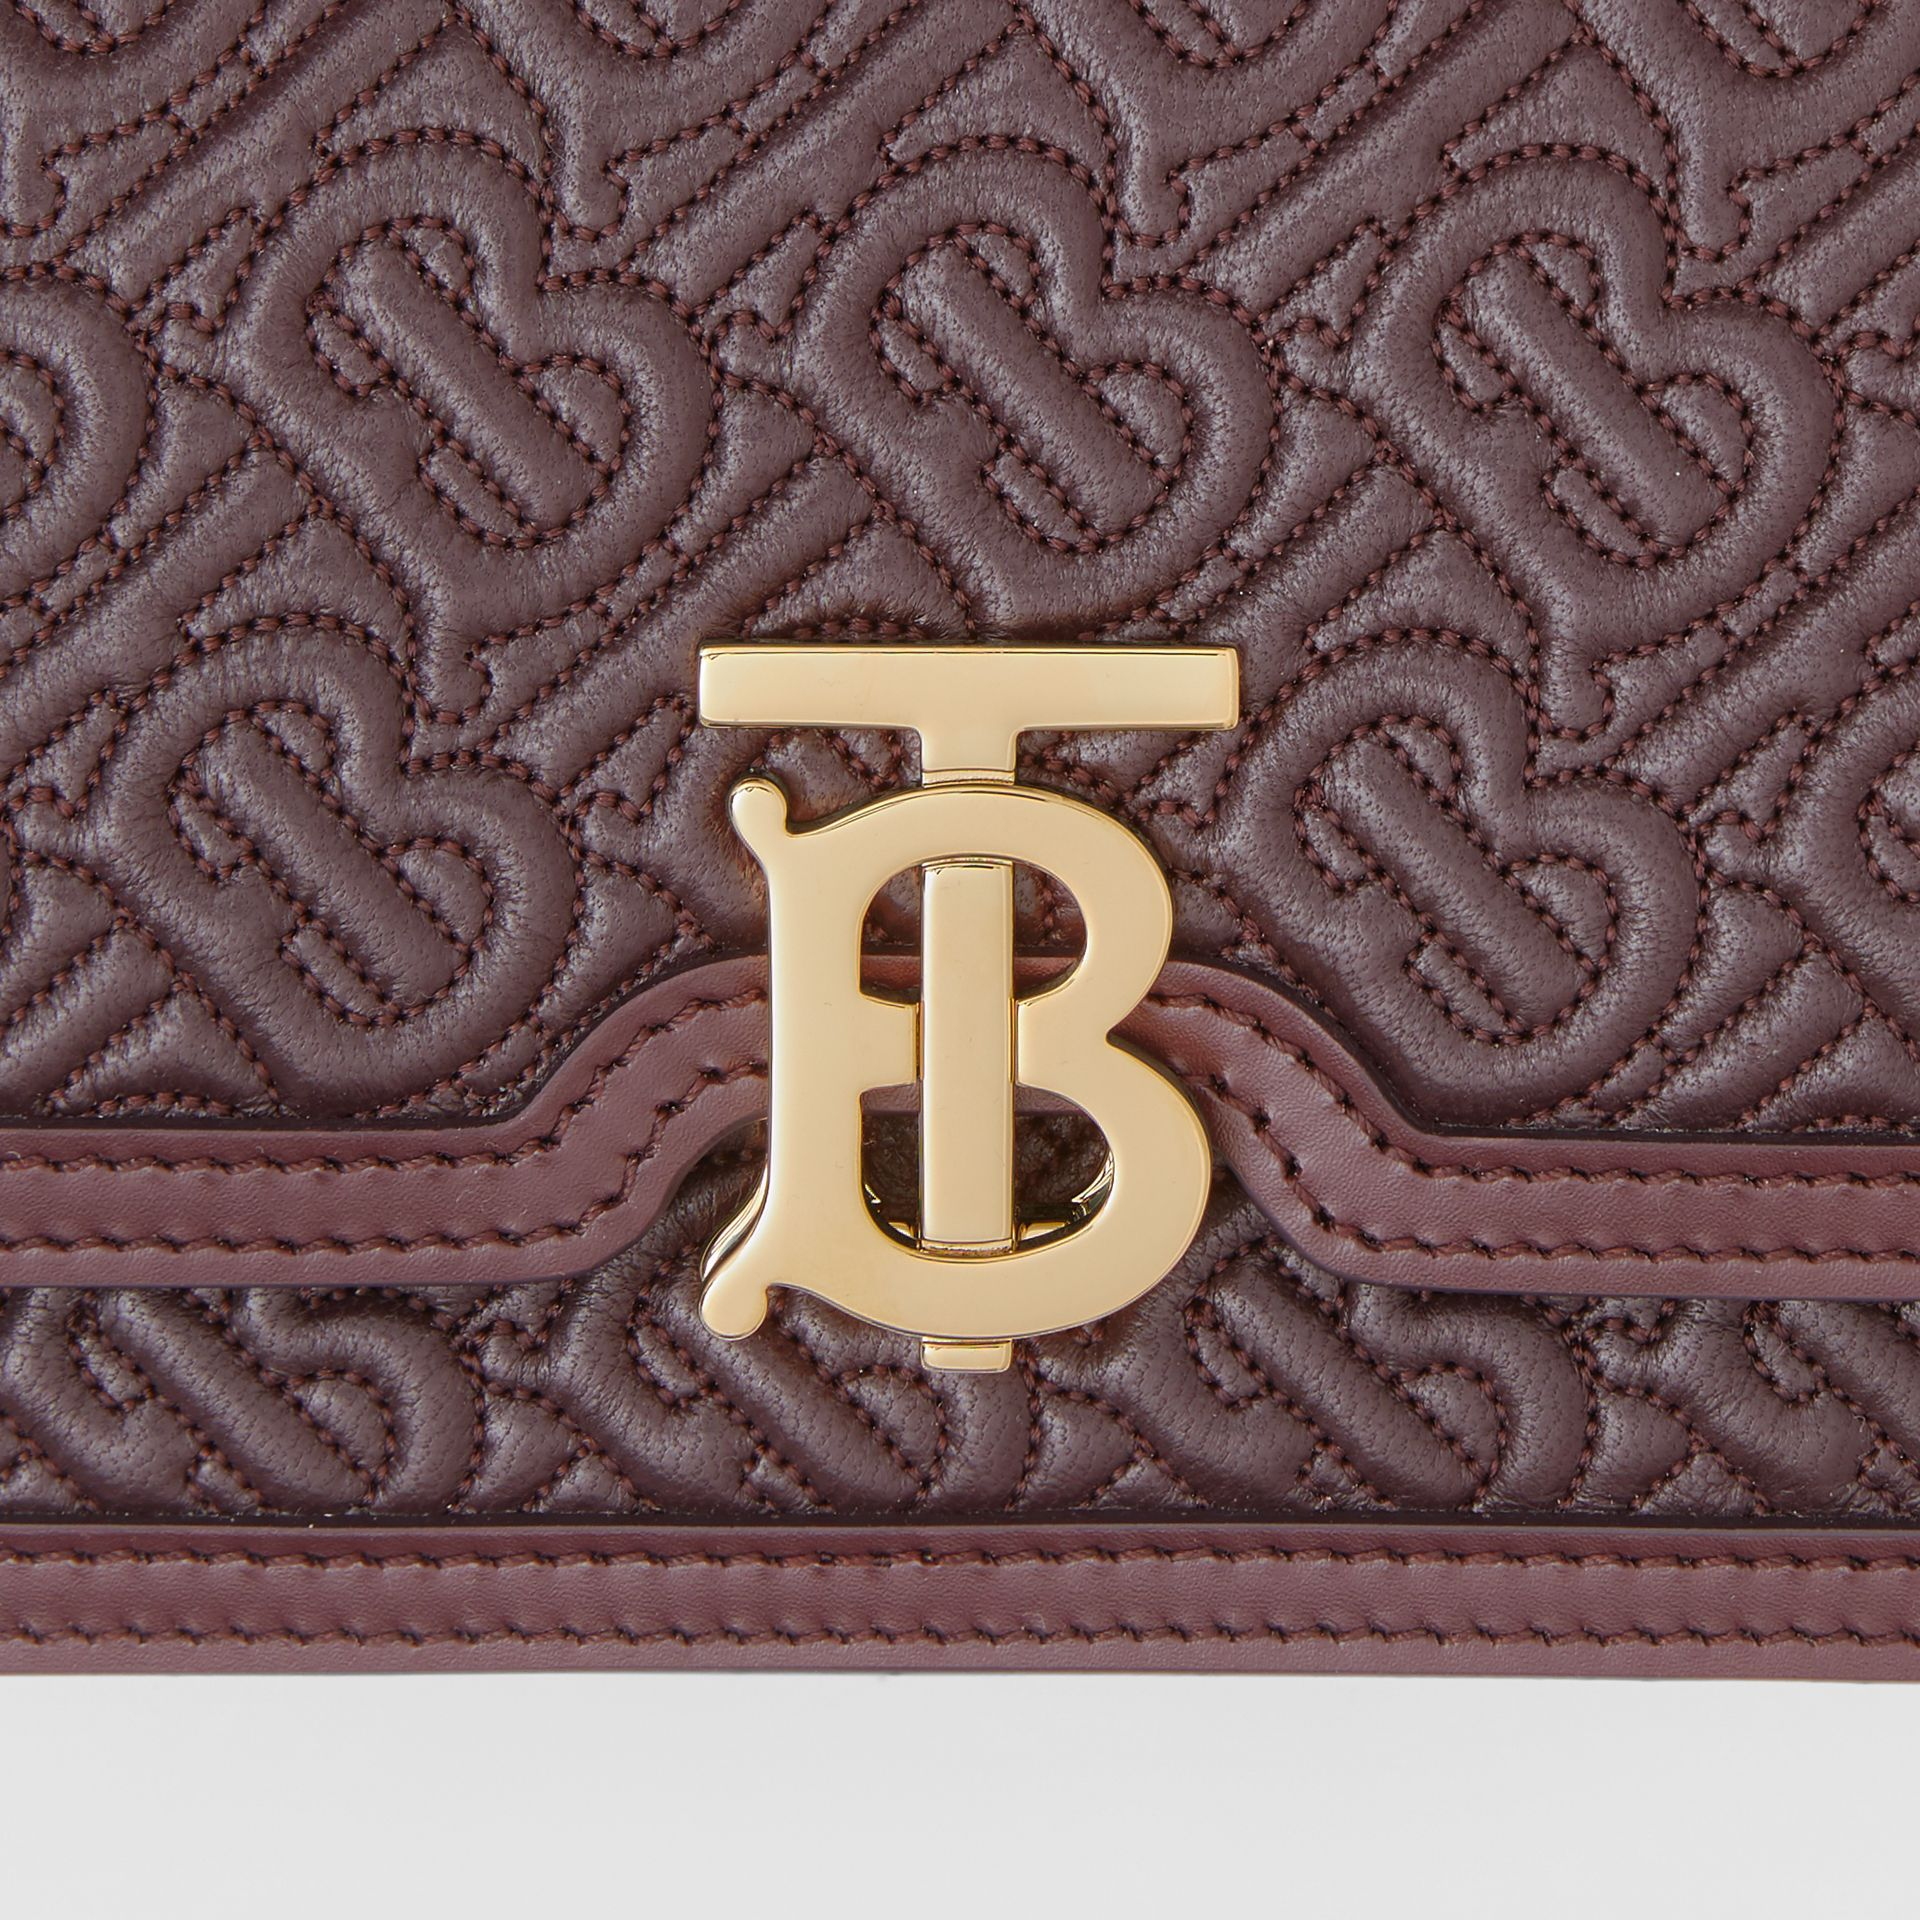 Mini Quilted Monogram Lambskin TB Bag in Dark Burgundy - Women | Burberry Hong Kong S.A.R - gallery image 1